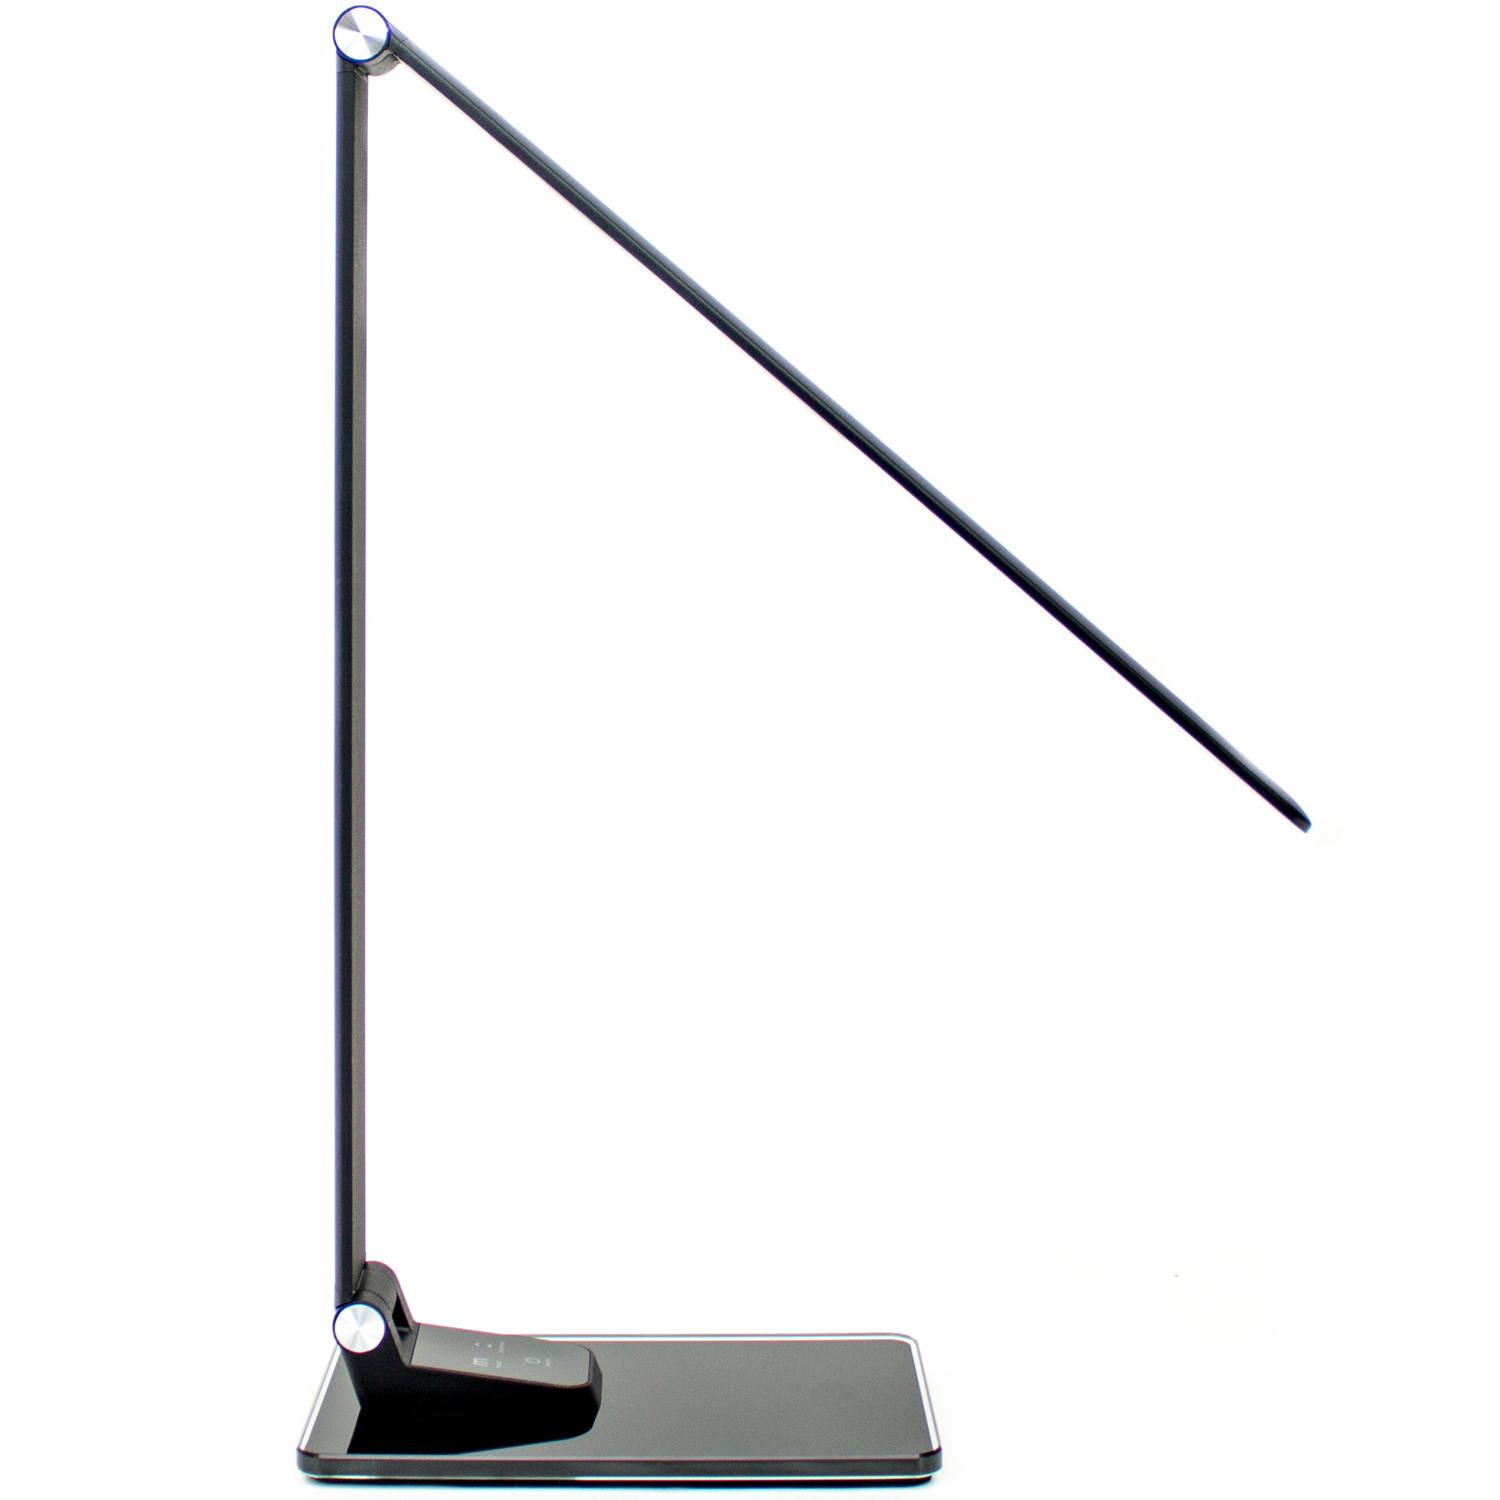 Executive Desk Lamp : W led executive desk lamp touch dimming control usb